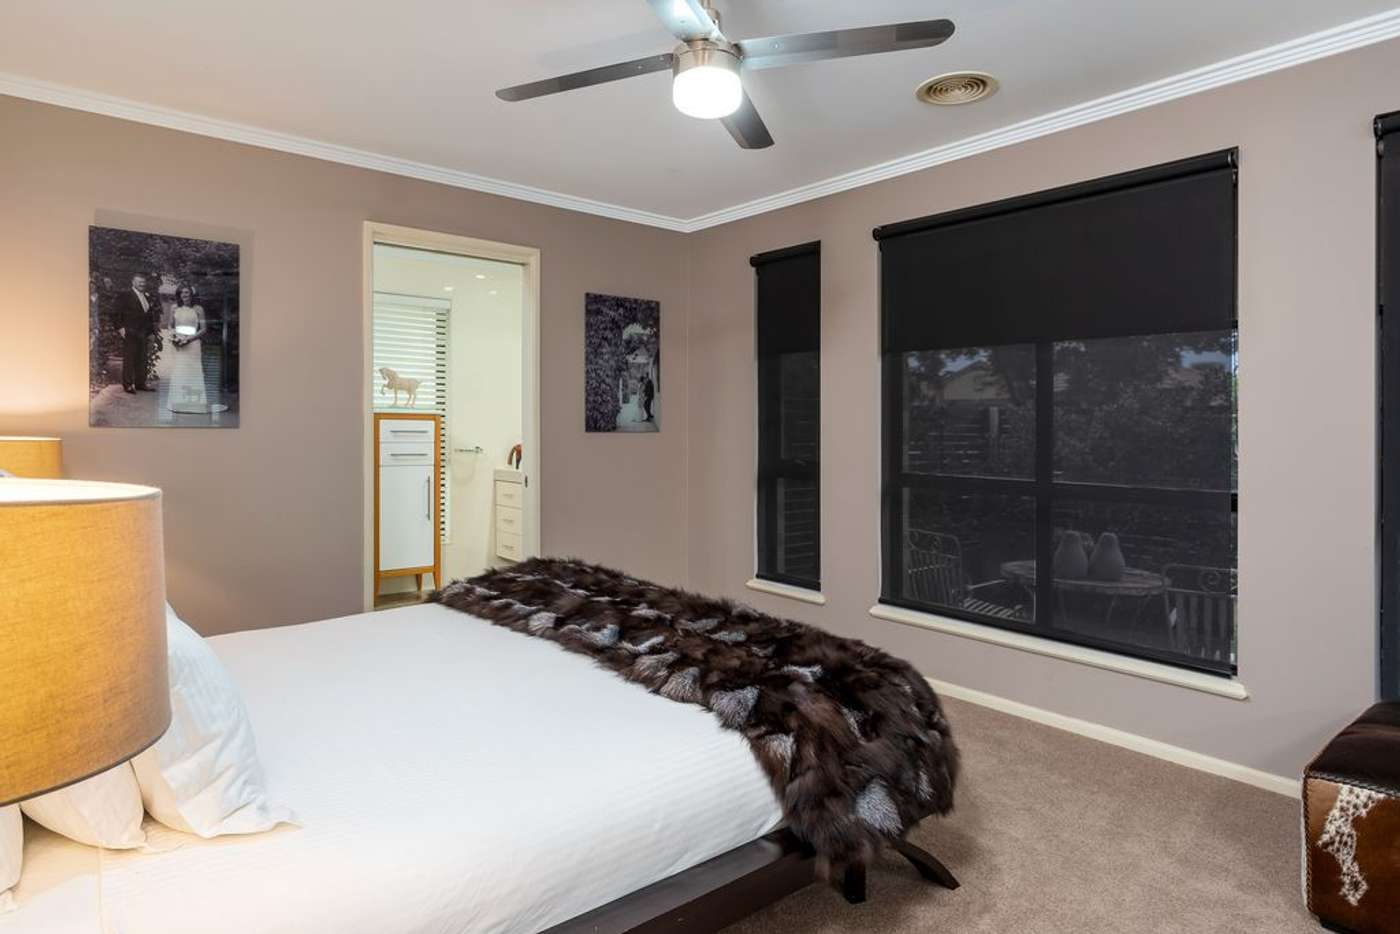 Sixth view of Homely house listing, 22 Galing Place, Wagga Wagga NSW 2650